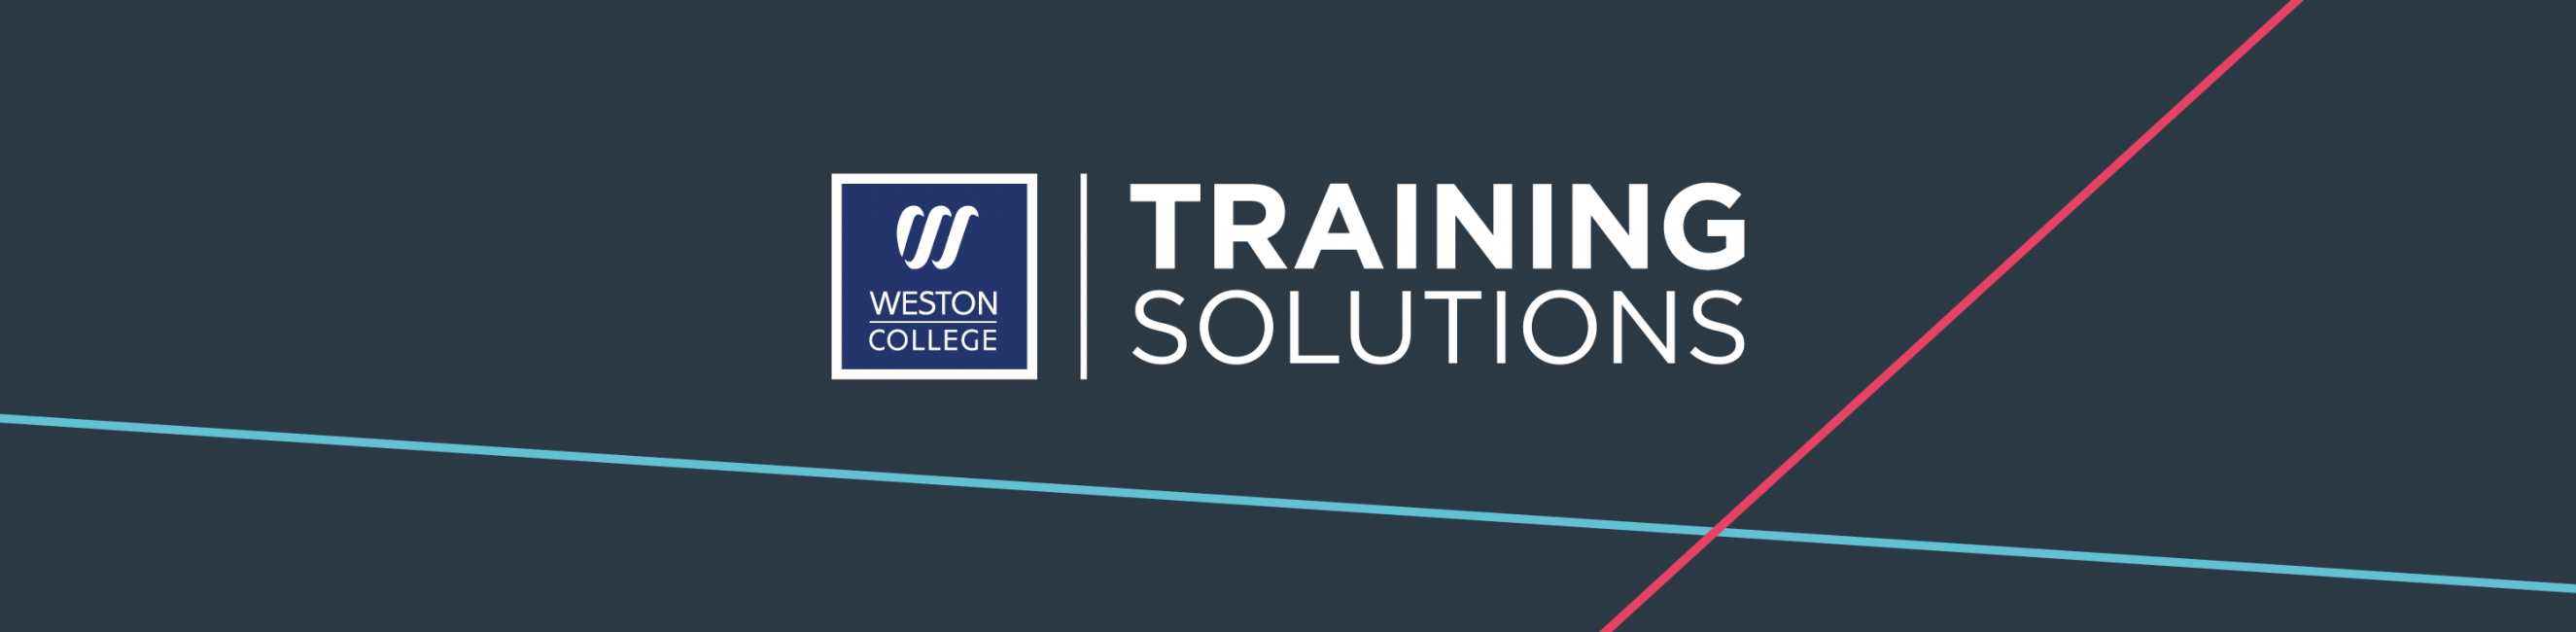 training solution